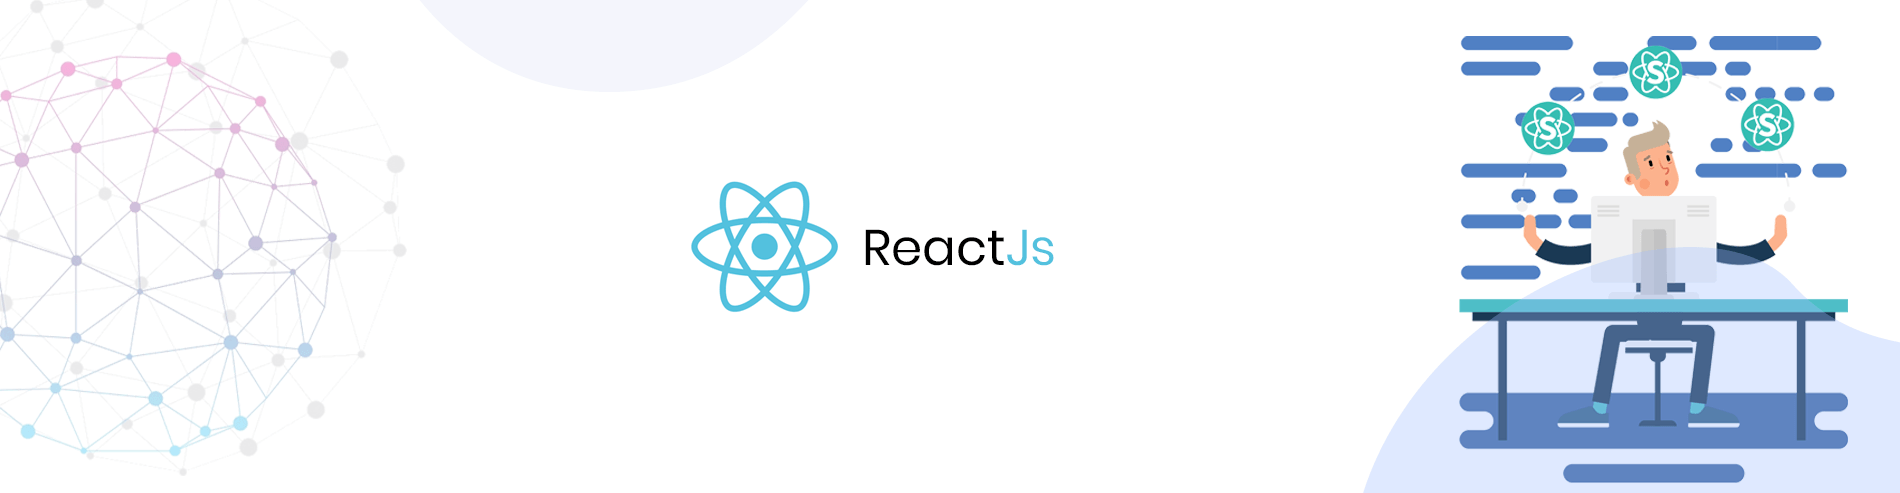 ReactJs Developement